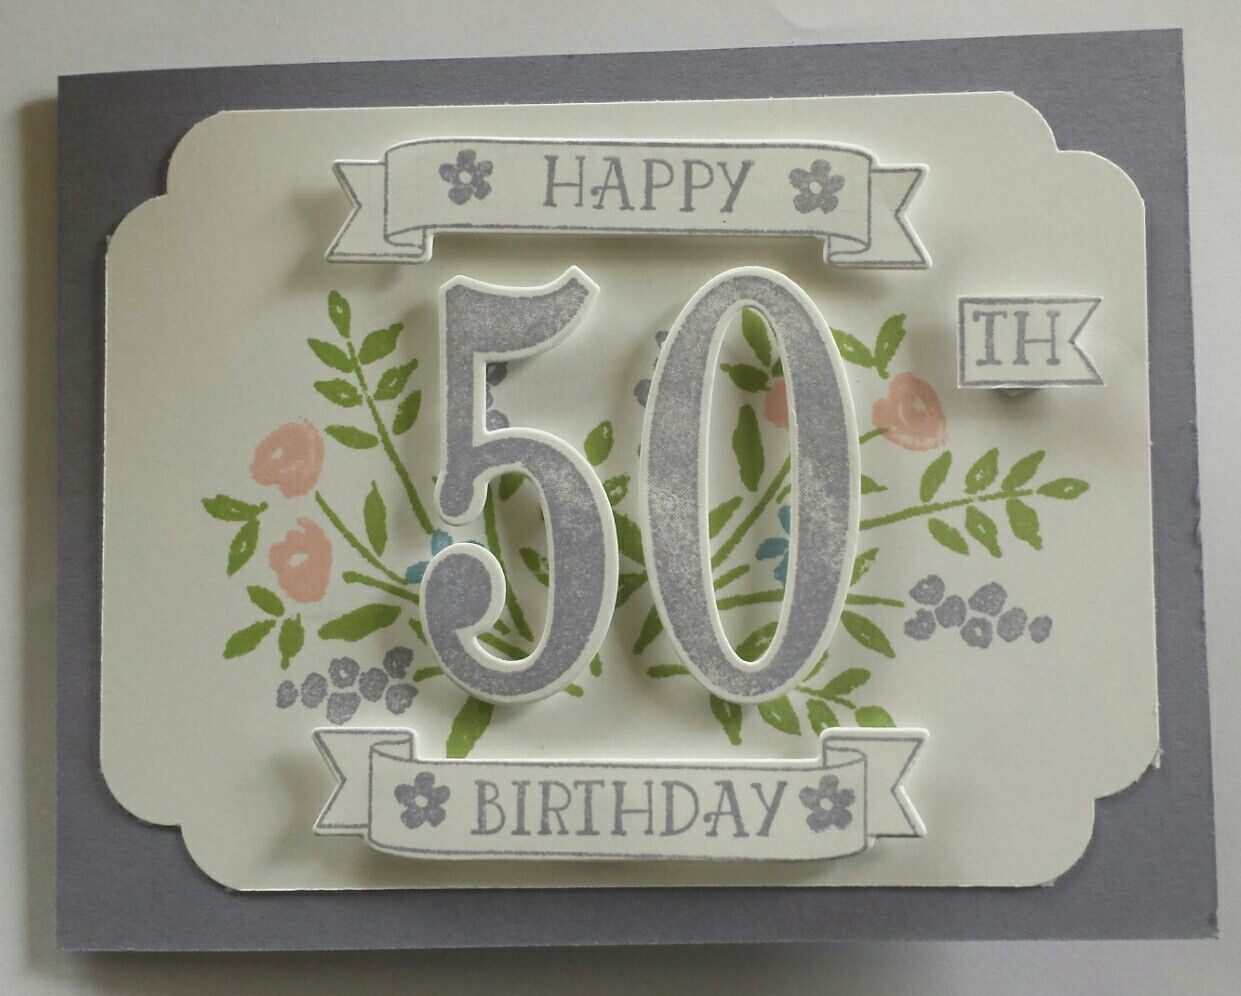 50th Birthday Card Made With Stampin Up Number Of Years Stamp Set And Large Numbers 50th Birthday Cards 50th Birthday Cards For Women Card Making Birthday